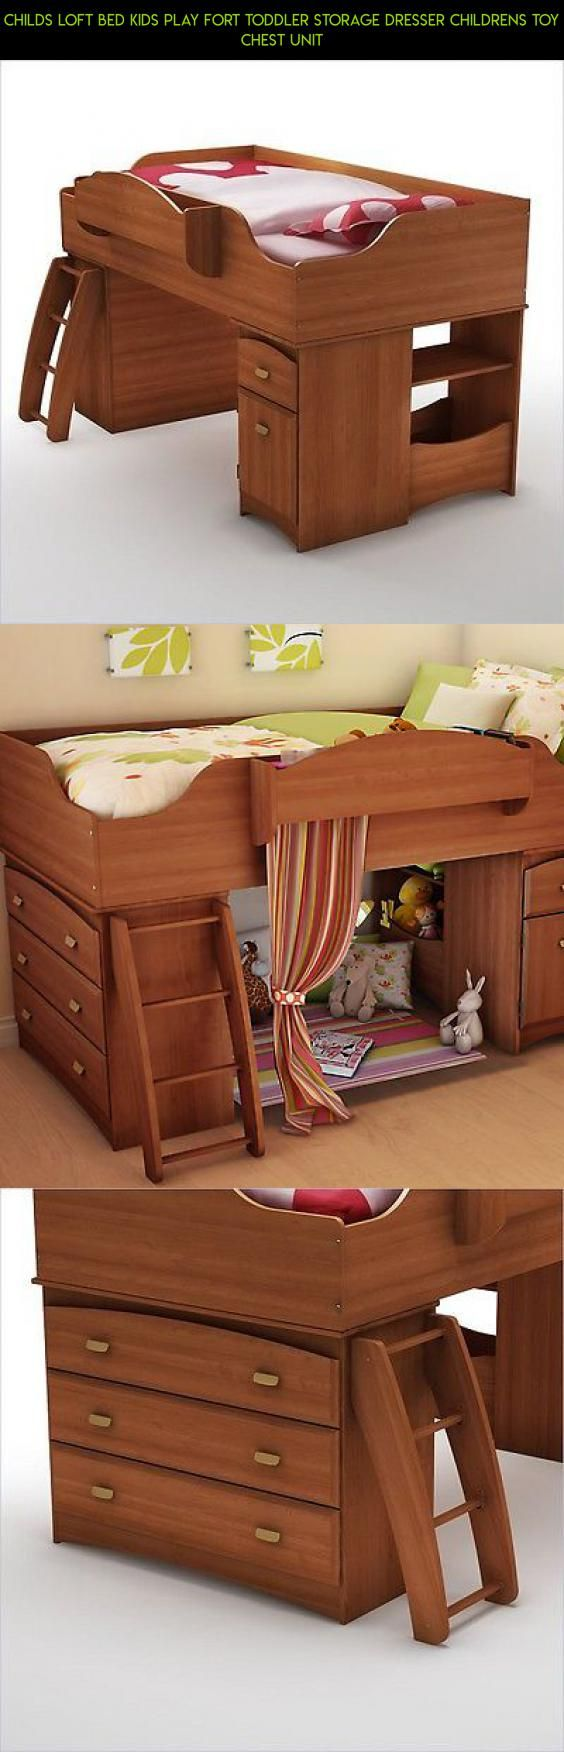 51 51 diy headboard ideas to make the bed of your dreams snappy pixels - 17 Best Ideas About Play Fort On Pinterest Kids Tree Forts Tree Forts And Diy Tree House